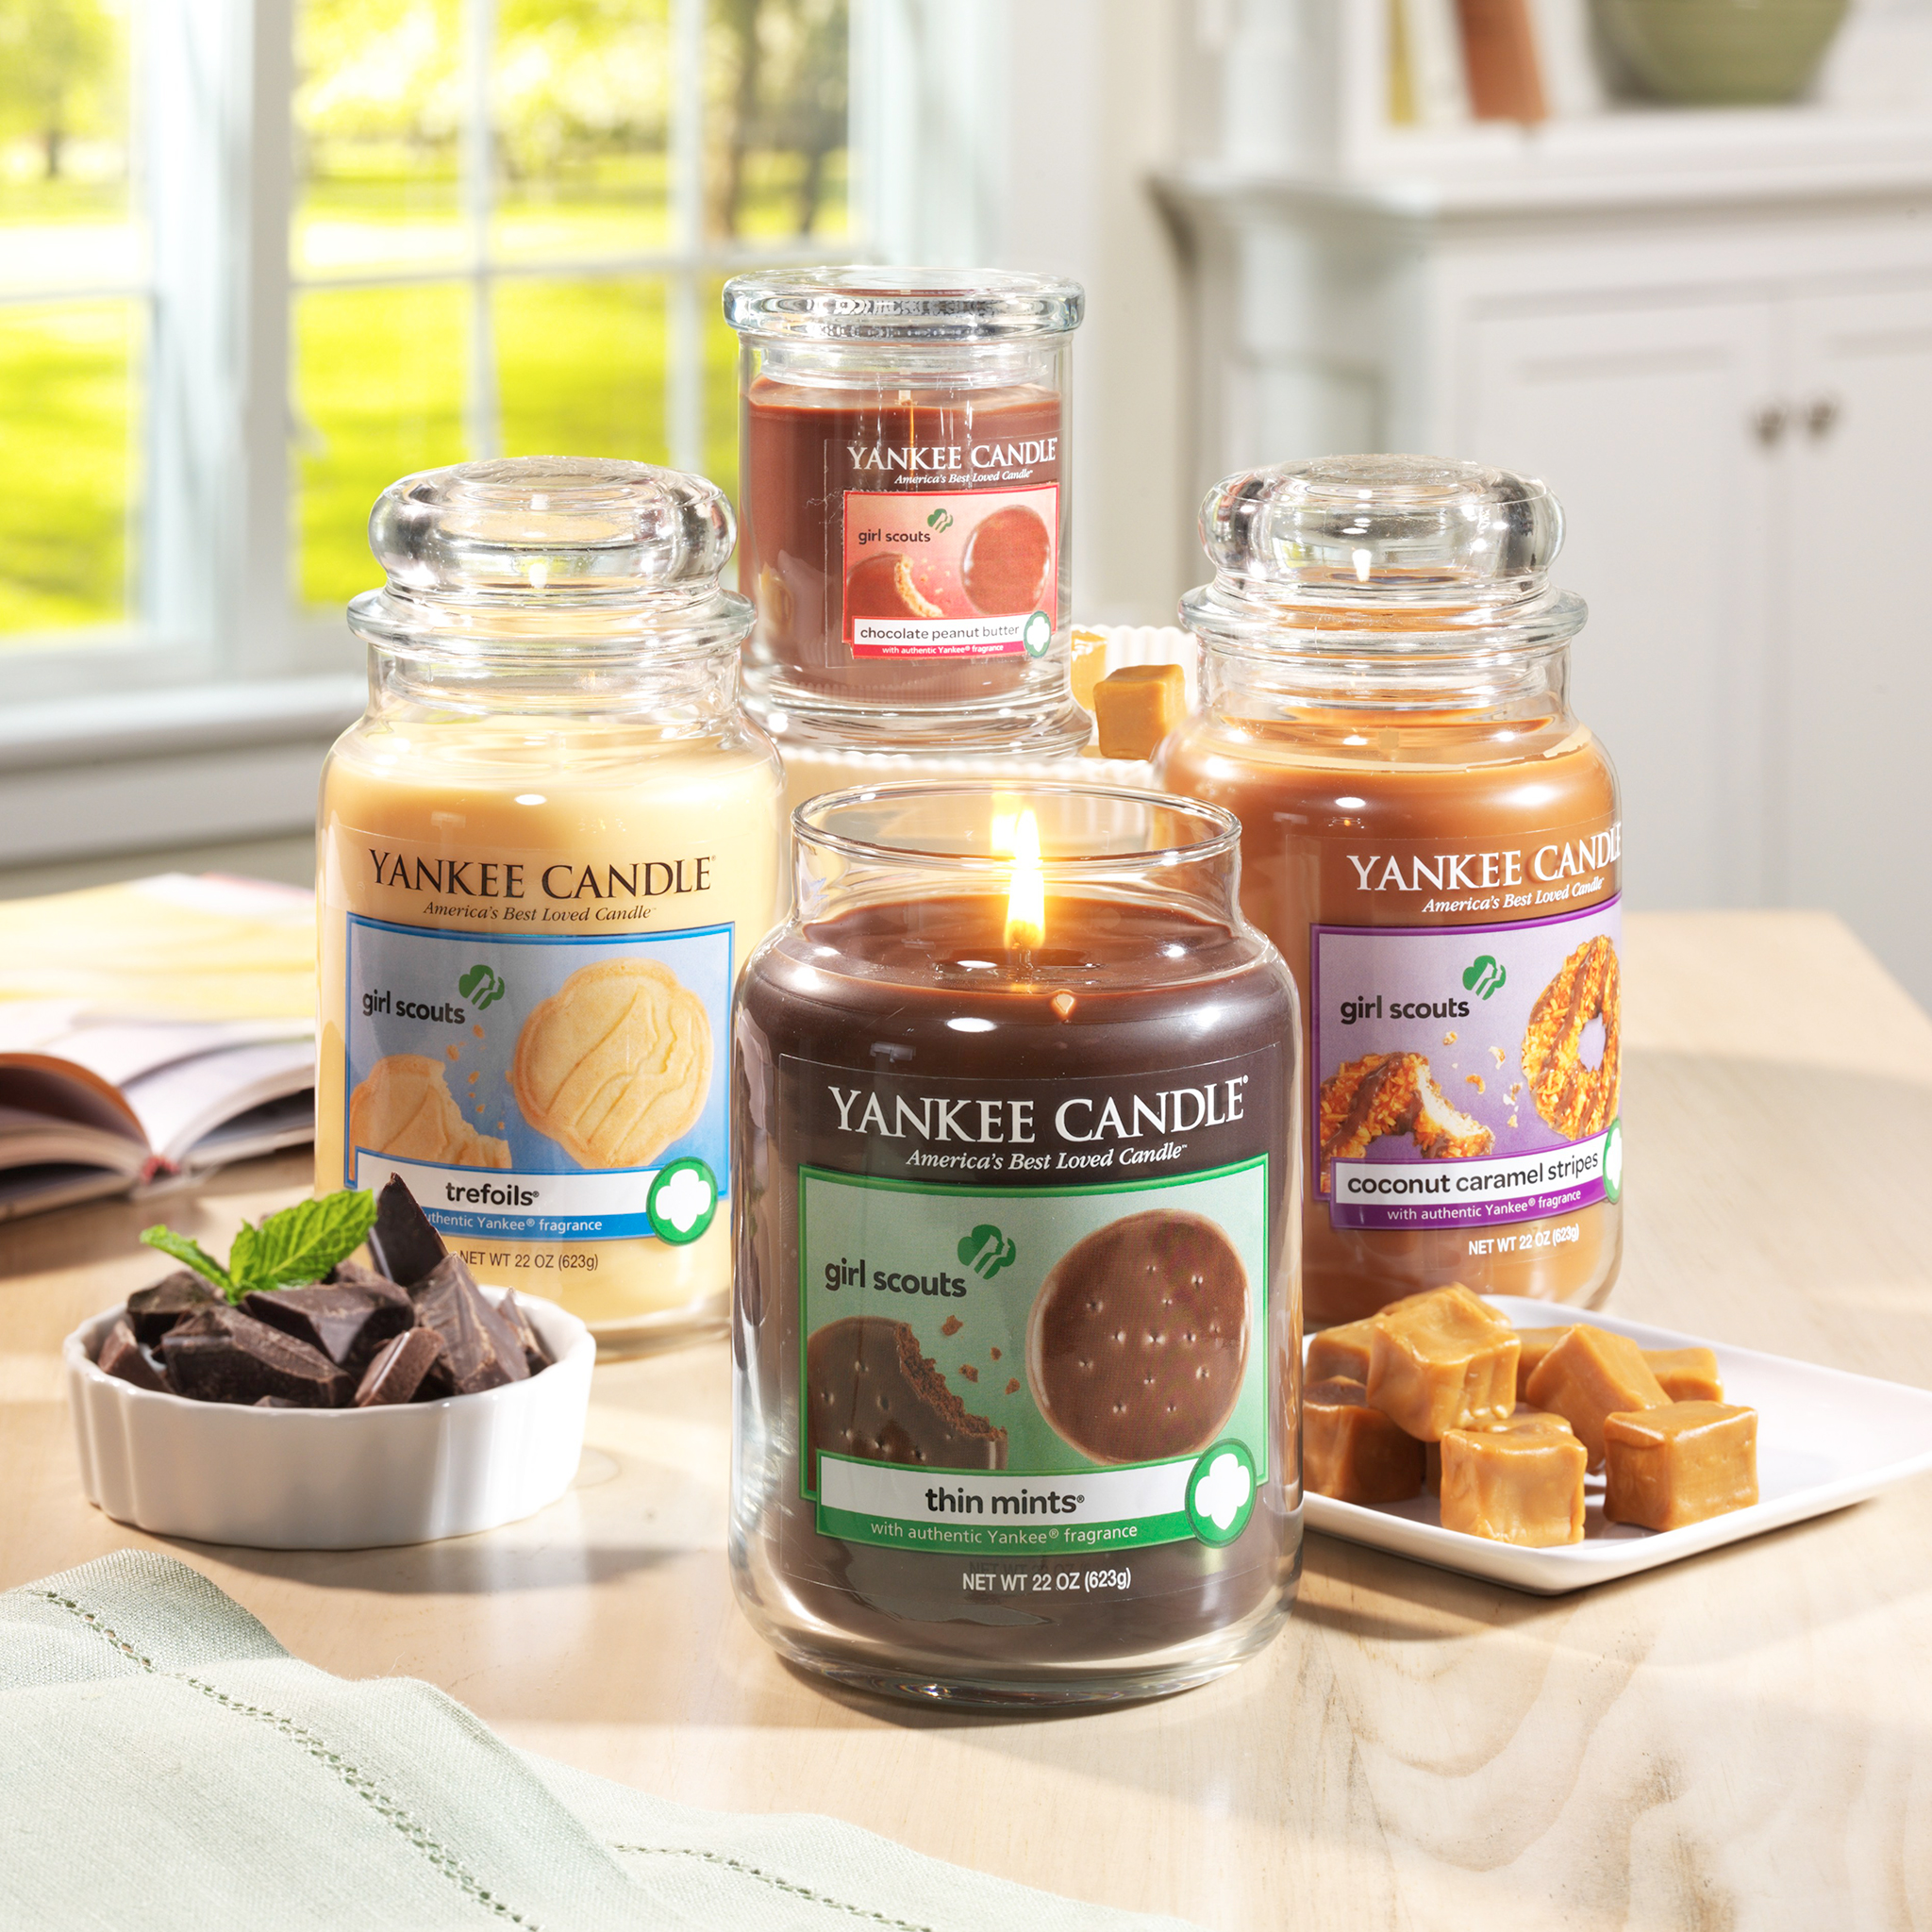 Yankee Candle Girl Scouts Collection